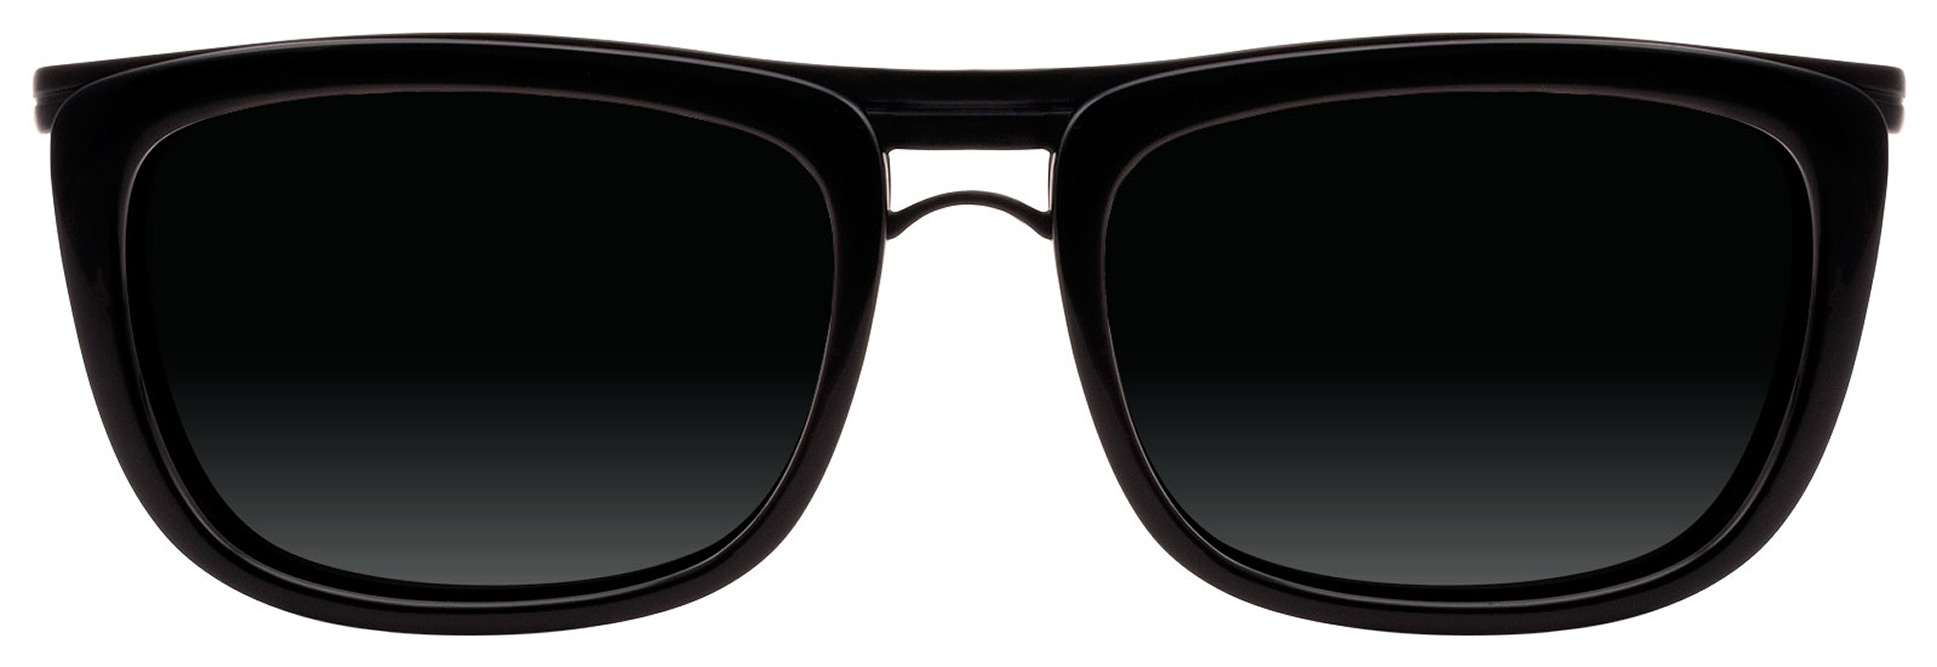 moscot-2013-sun-collection-sunglasses-46